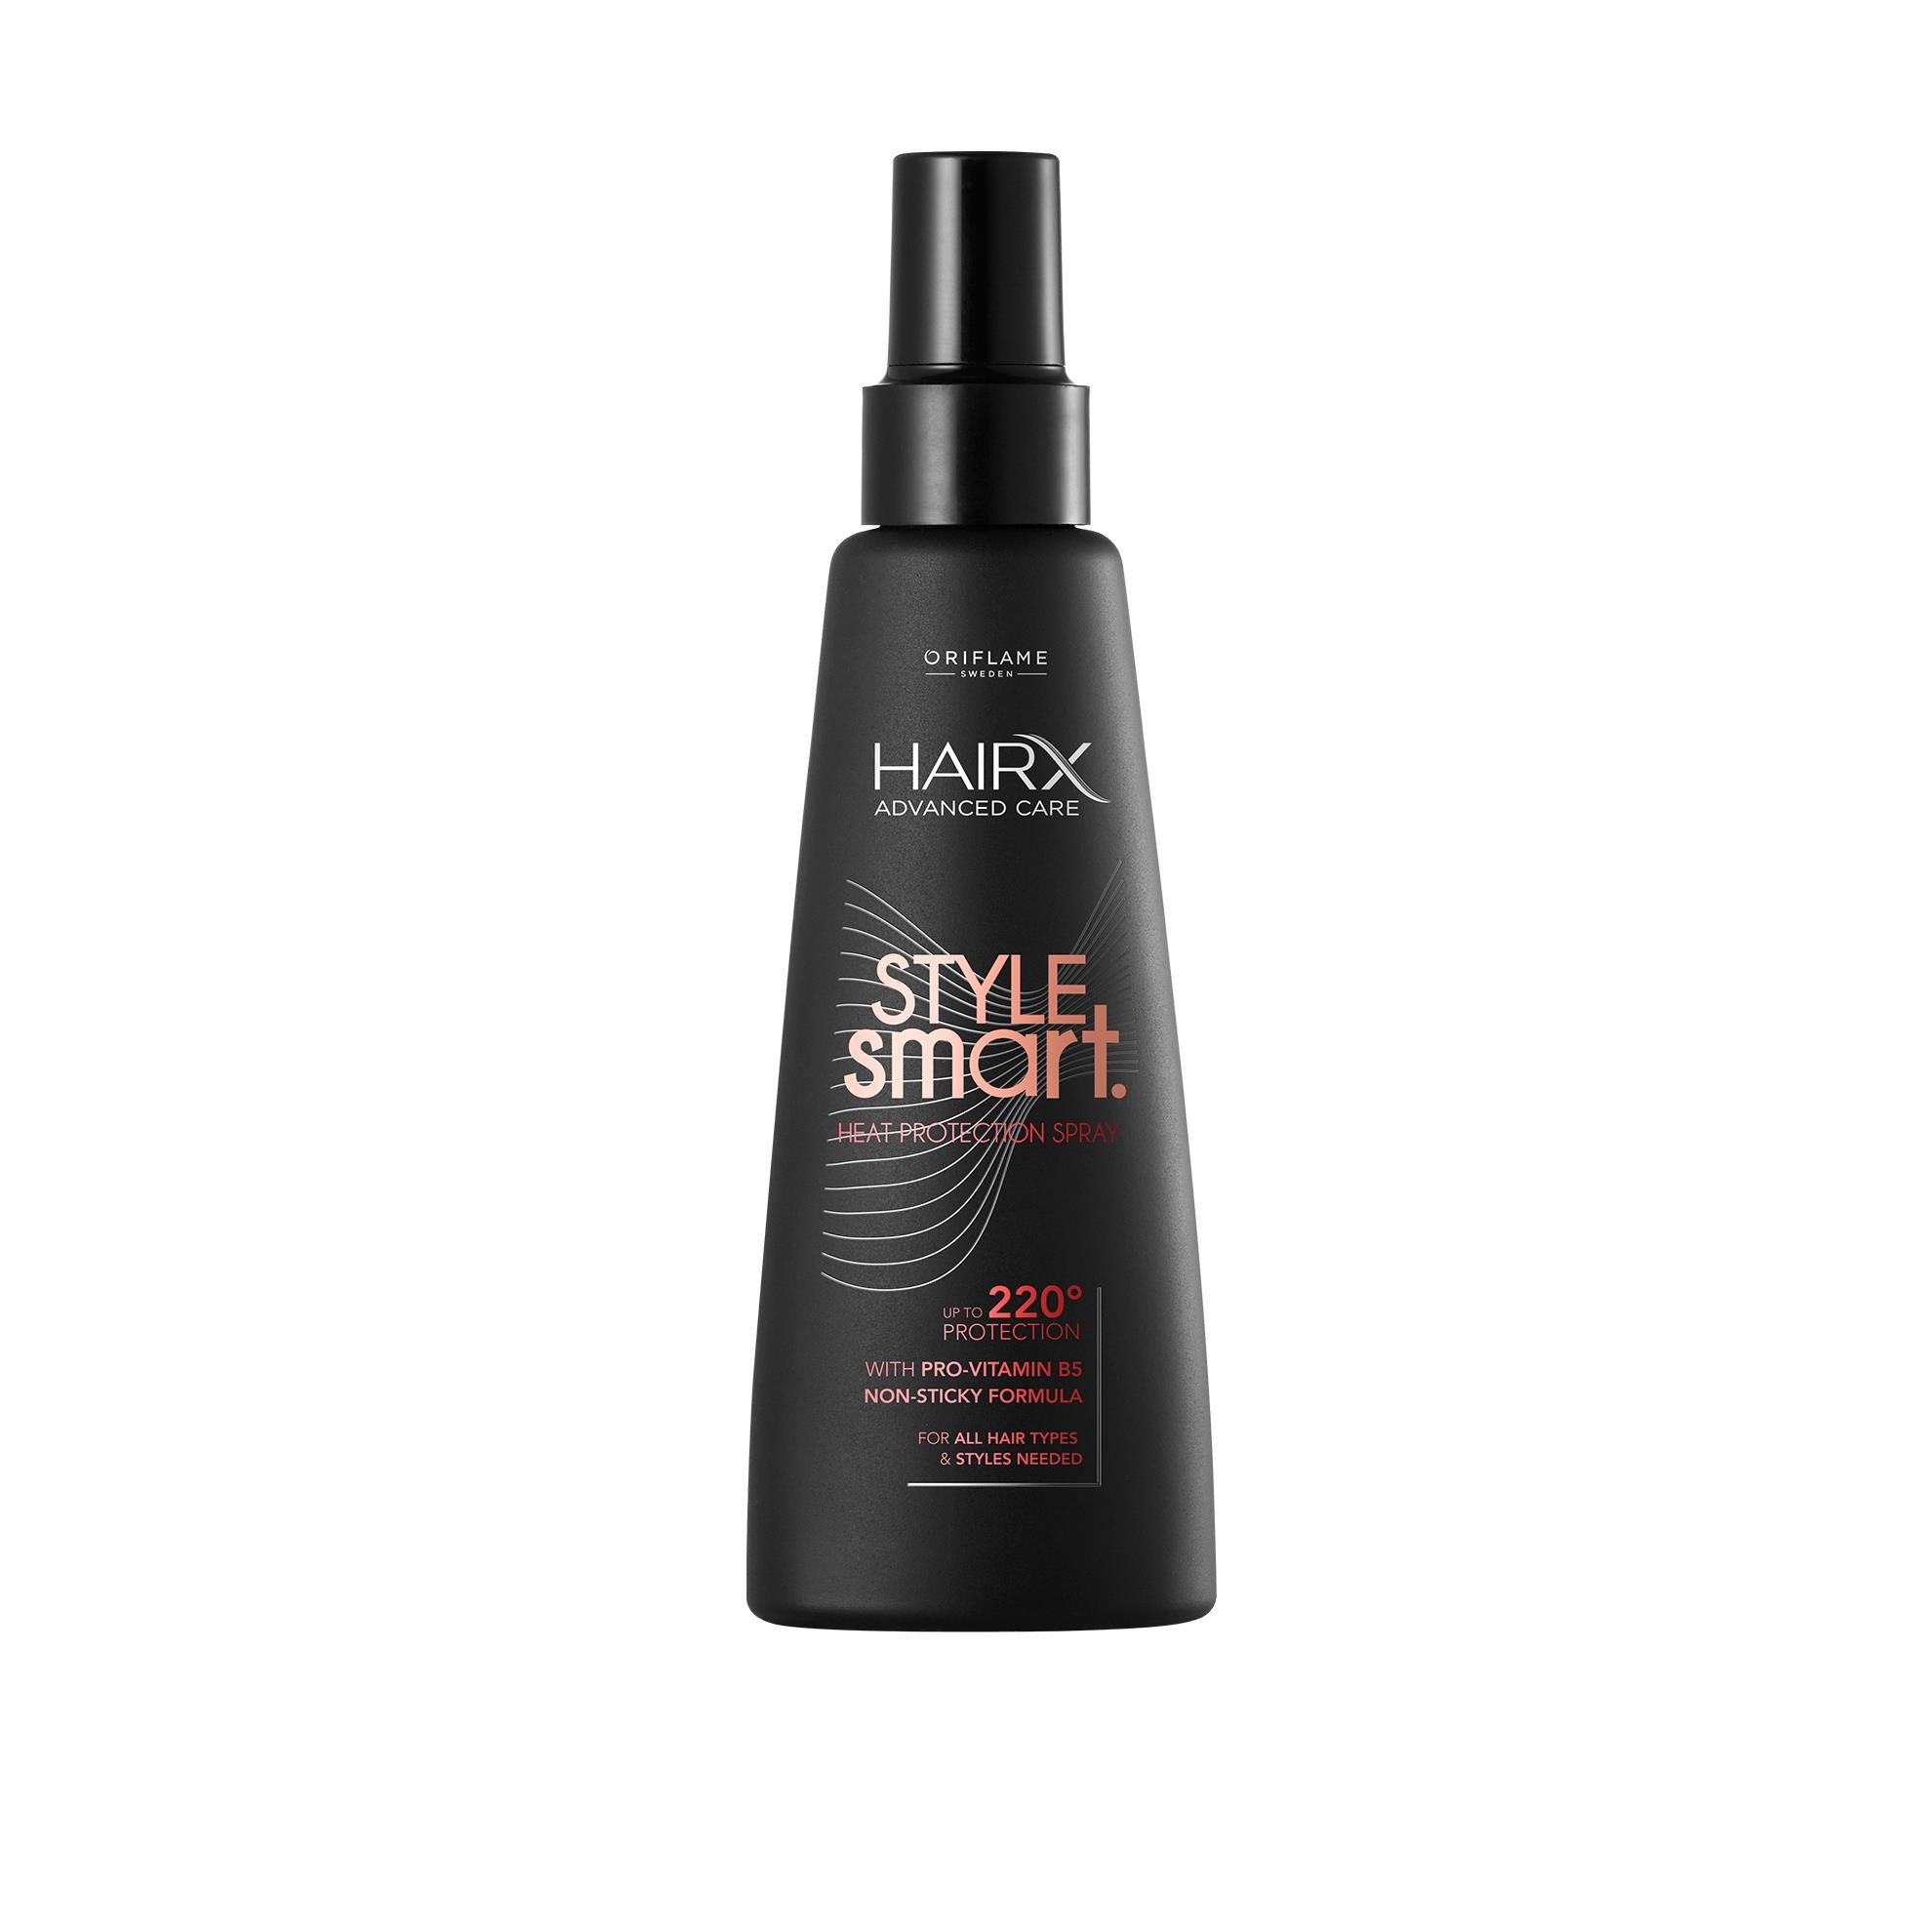 Oriflame-HairX-Styling-Ultimate-Style-Hairspray